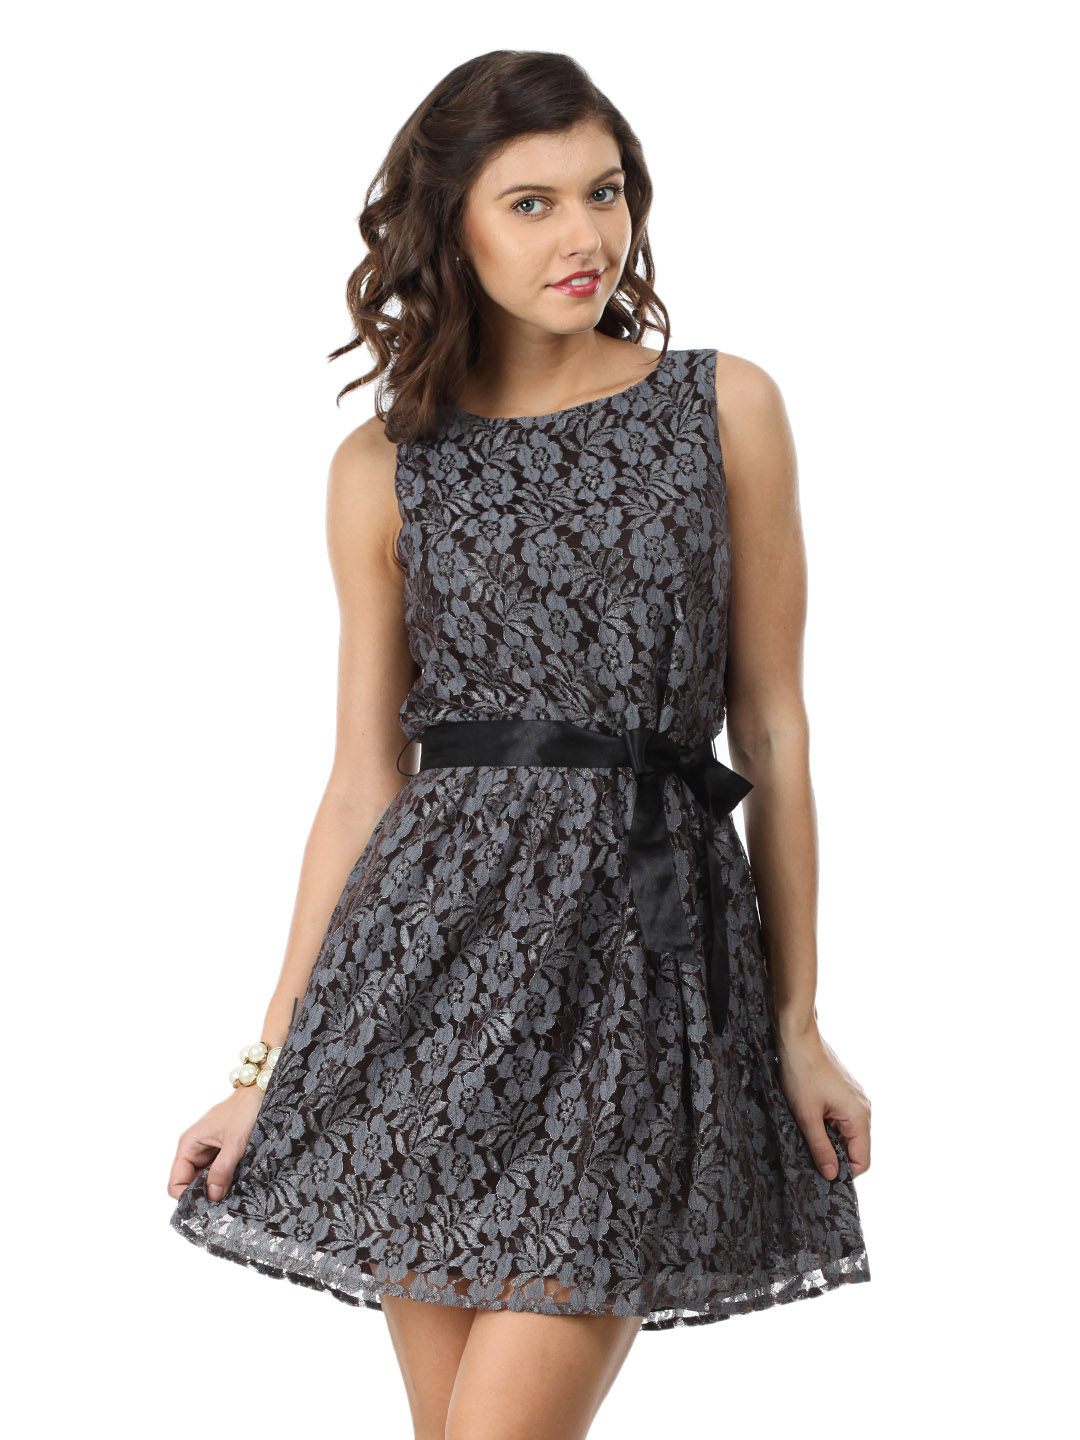 Wedding Gray Lace Dress collection gray lace dress pictures fashion trends and models